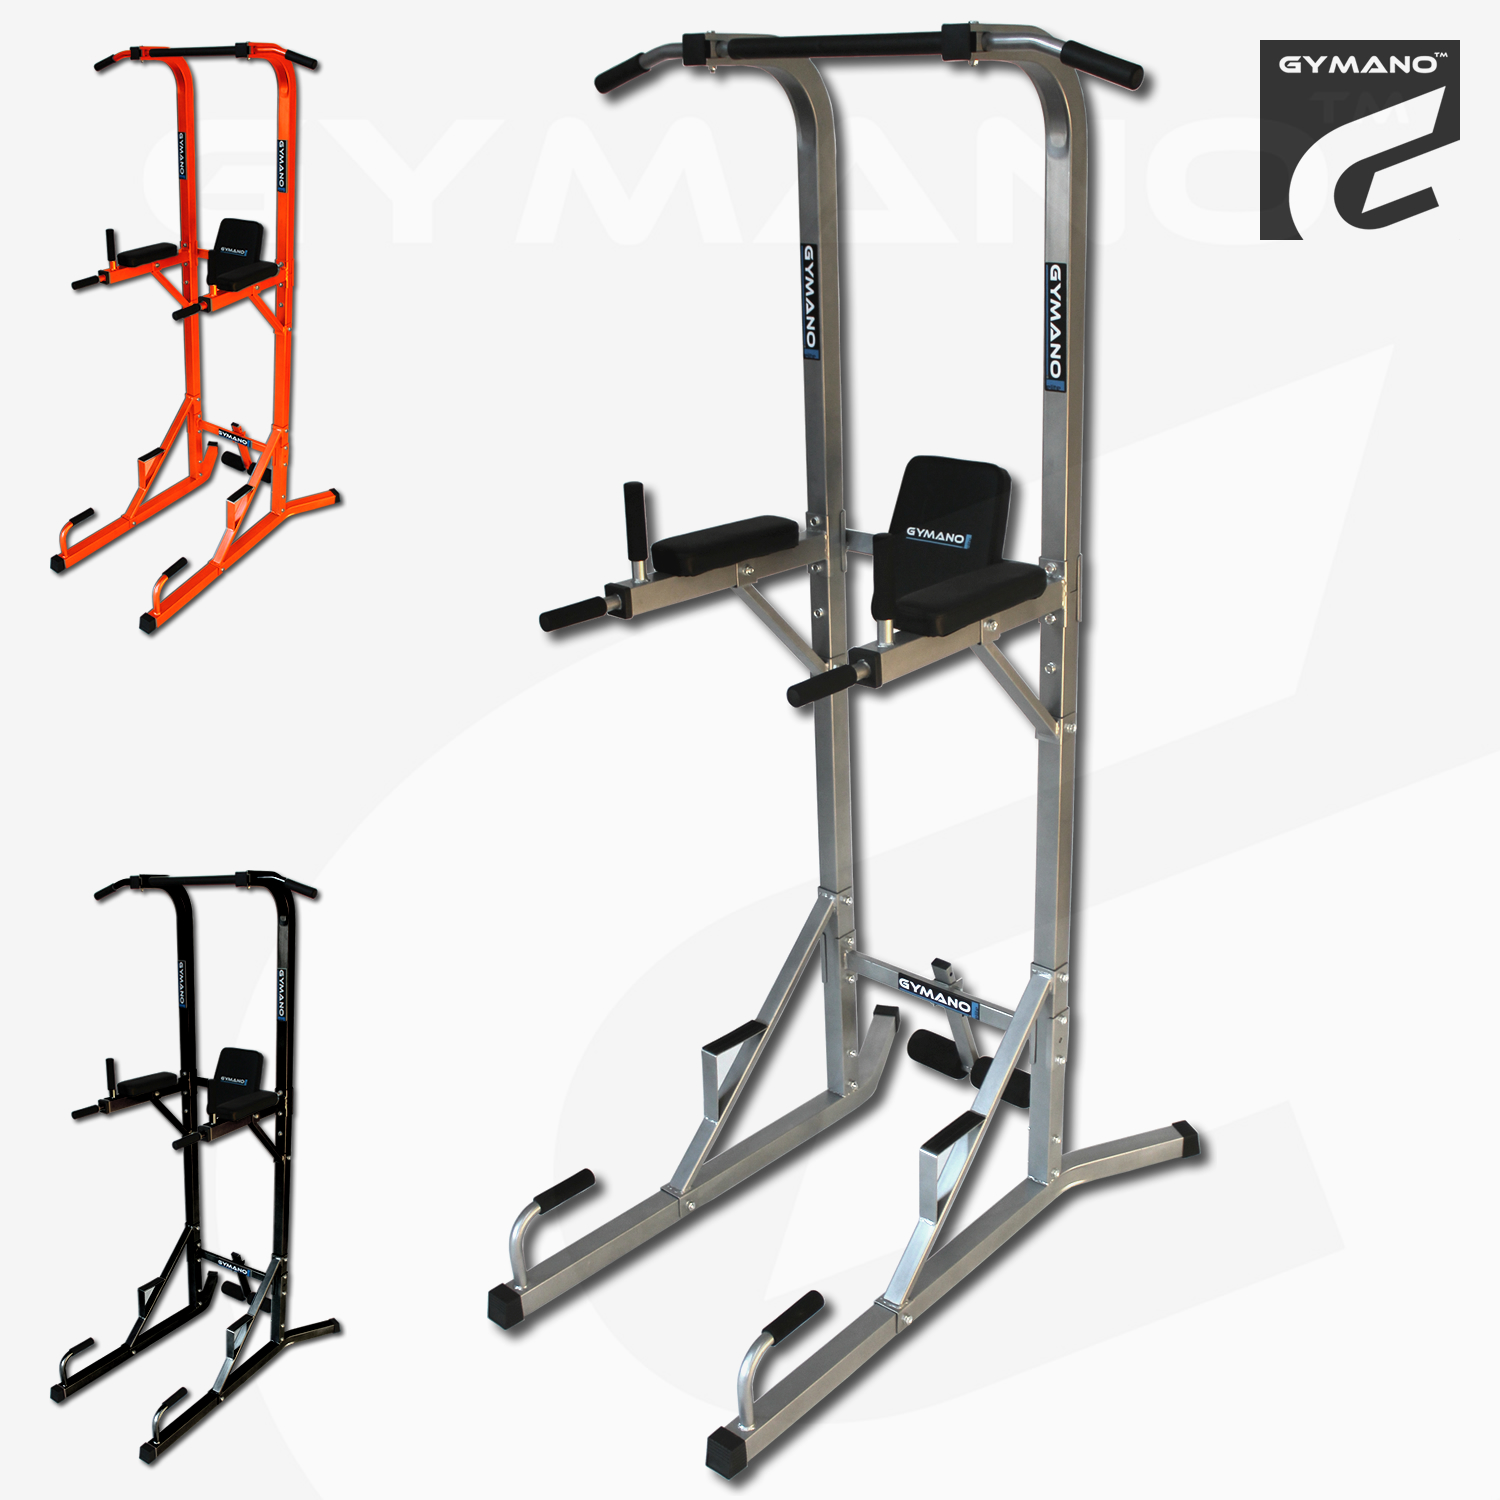 GYMANO-ULTIMATE-VKR-POWER-TOWER-w-PULL-PUSH-UP-BAR-TRICEP-DIP-SIT-UP-CRUNCH